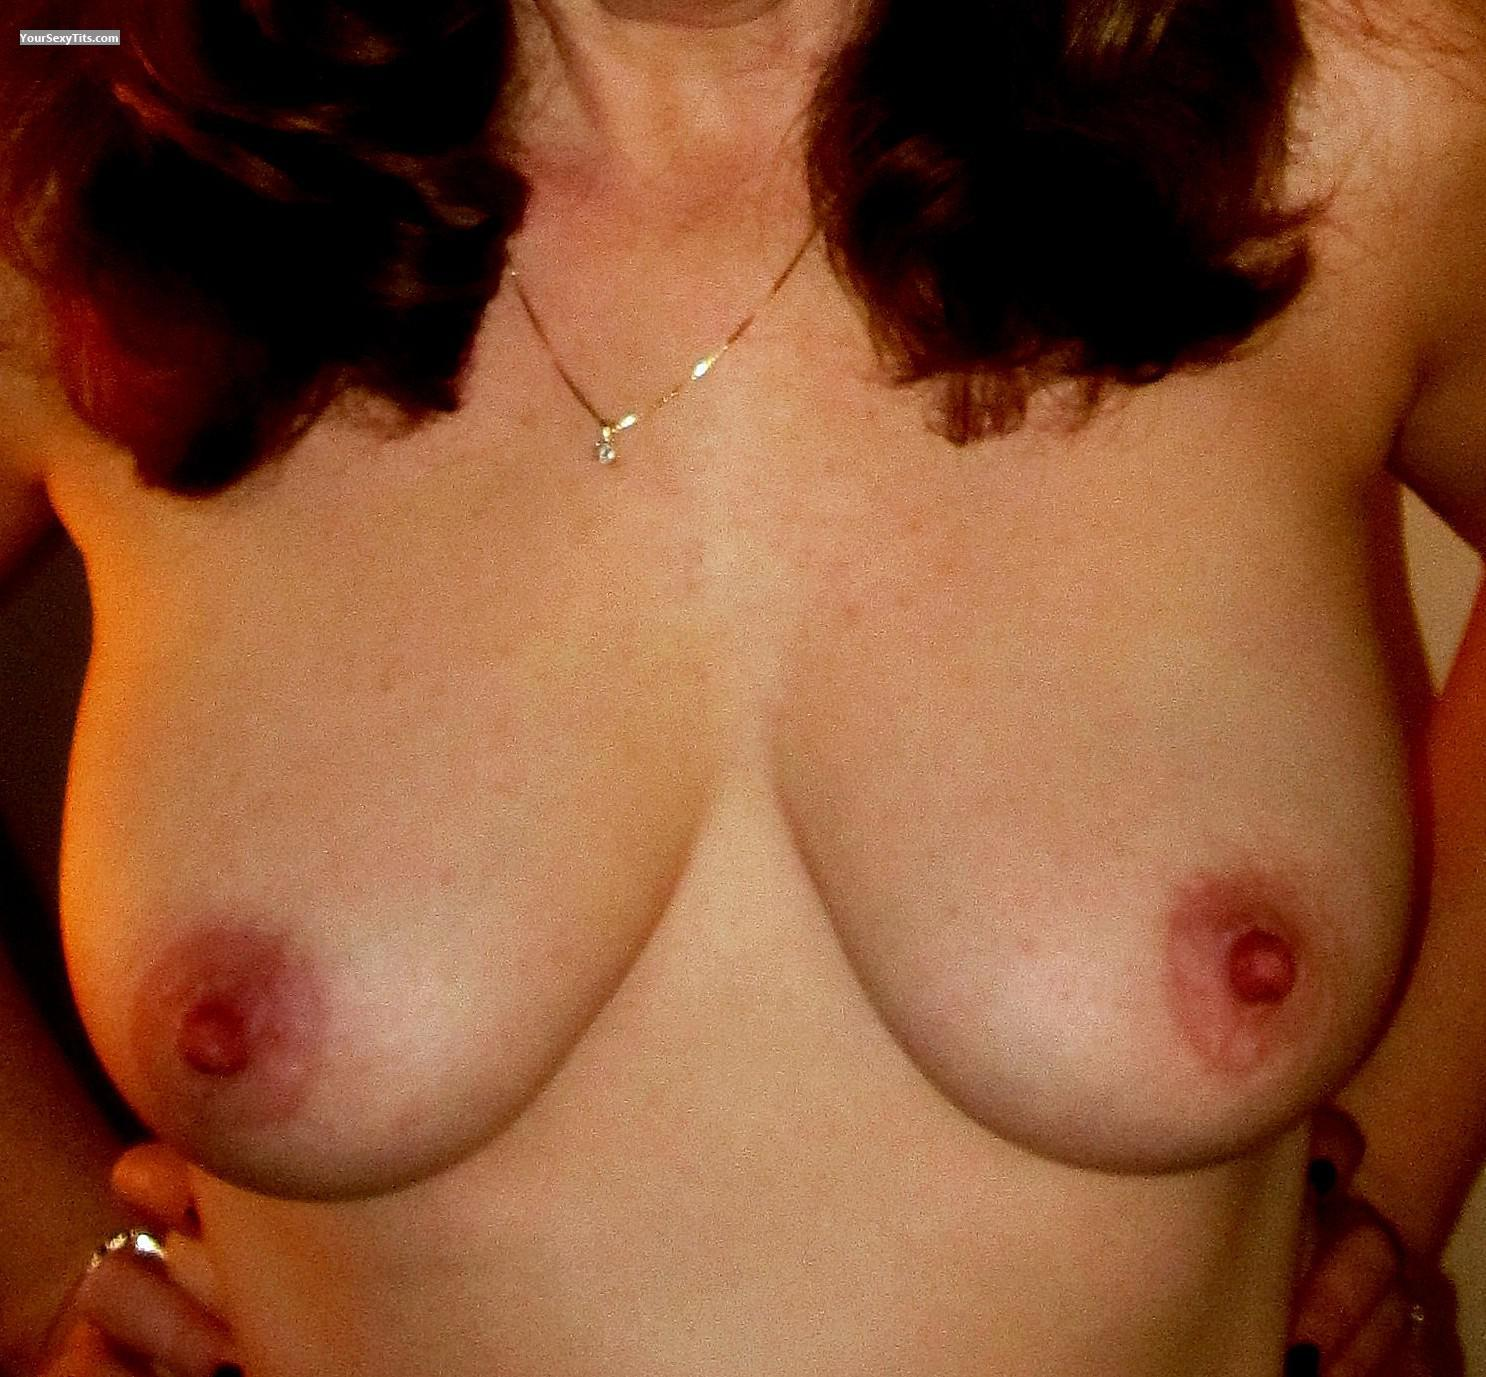 My Big Tits Selfie by MJ